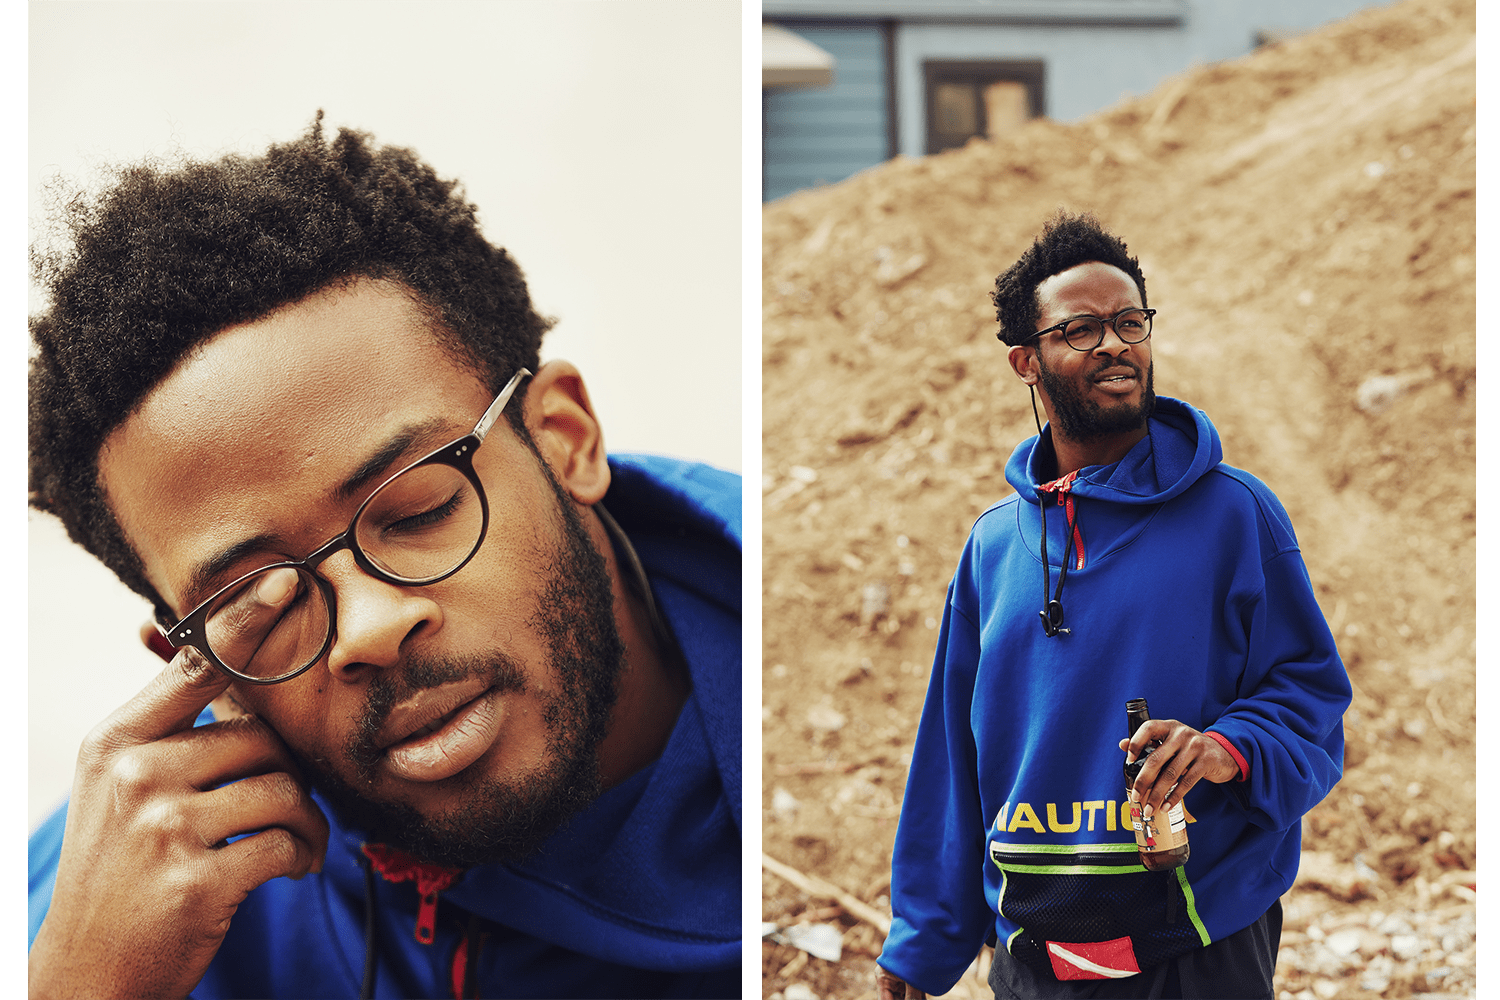 Prolific Producer Knxwledge Latest Album 1988 New Interview Los Angeles Stones Throw Beat Maker SP 303 Madlib Anderson Paak Meek Mill HYPEBEAST Editorial Talk Hud Dreems Peanut Butter Wolf Low End Theory